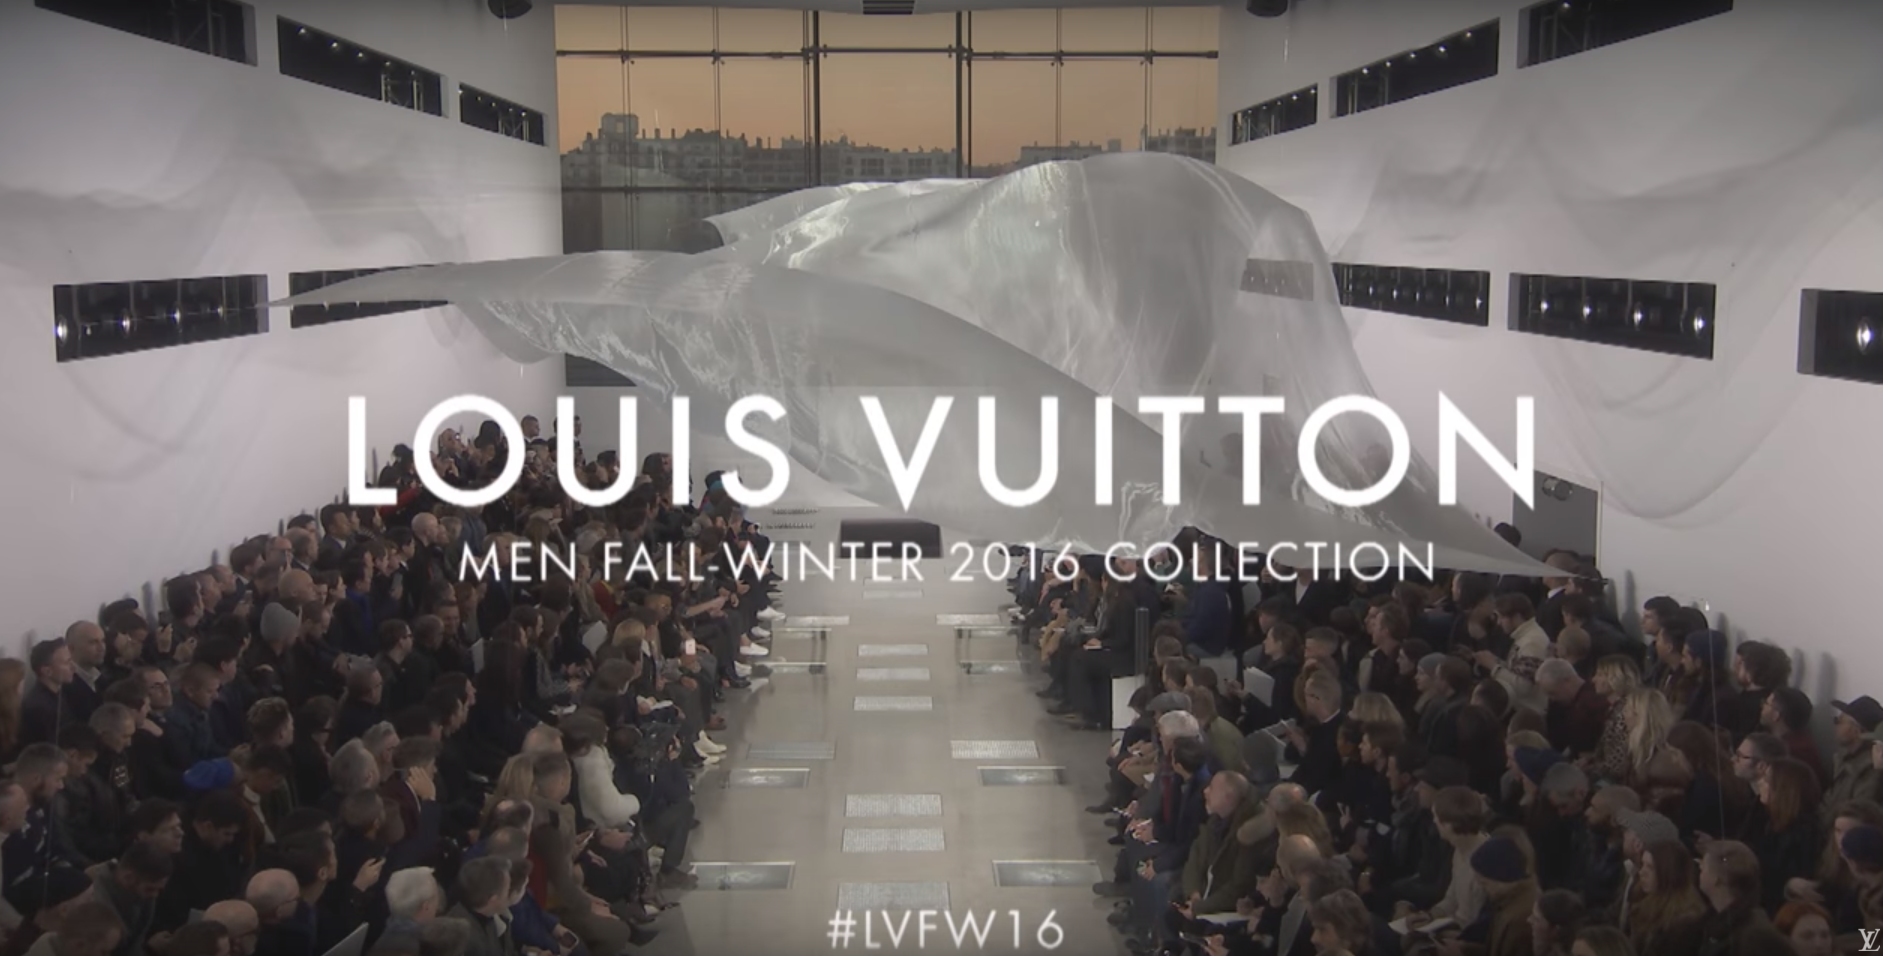 Louis Vuitton Men's Fall-Winter 2016 Fashion Show